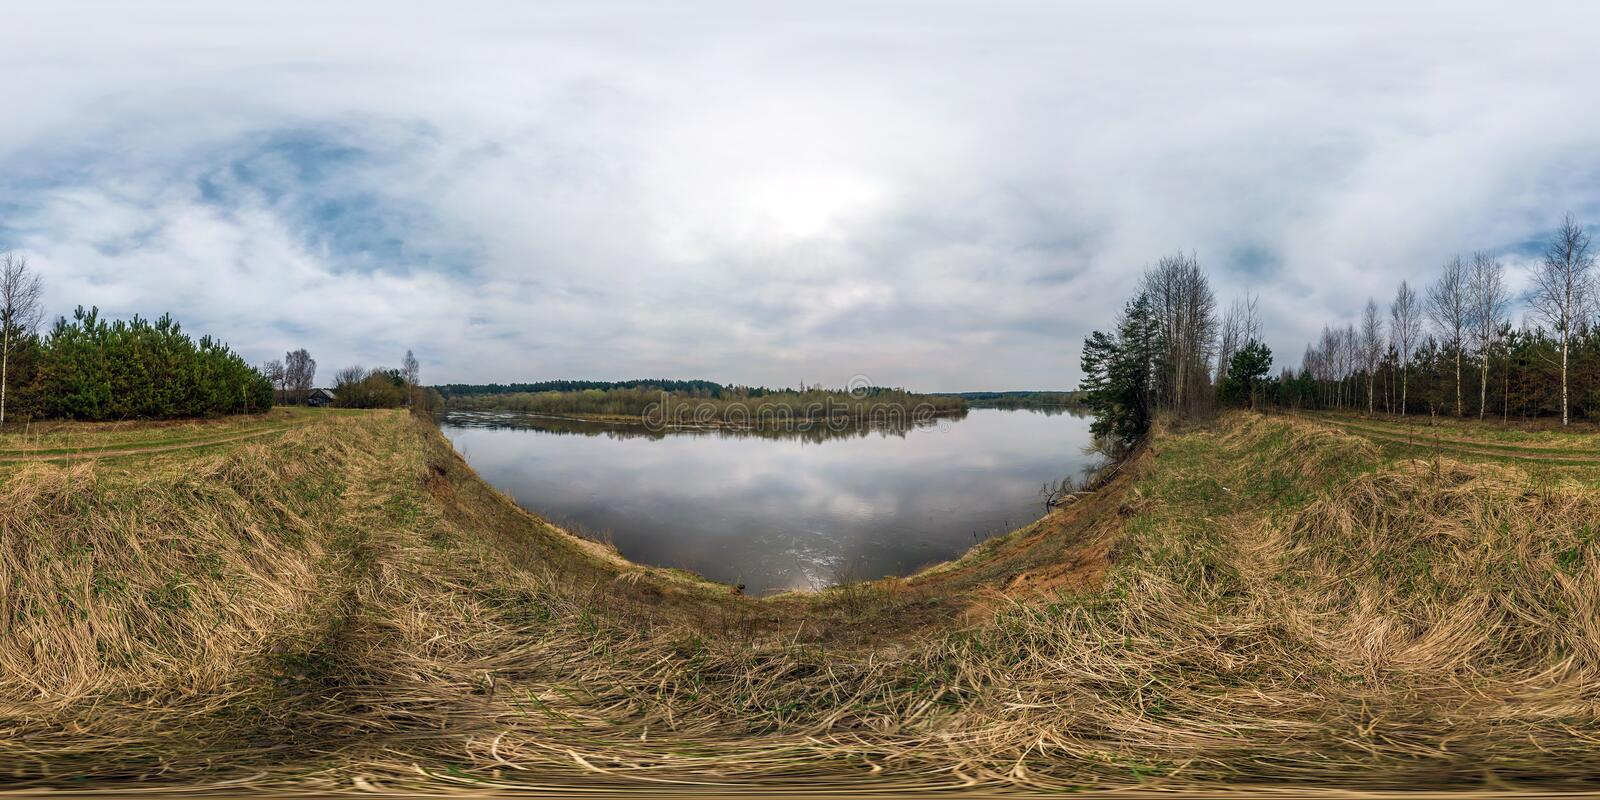 Full seamless panorama 360 angle view at the high cliff of the broad river bank in sunny day. Skybox as background in royalty free stock photos